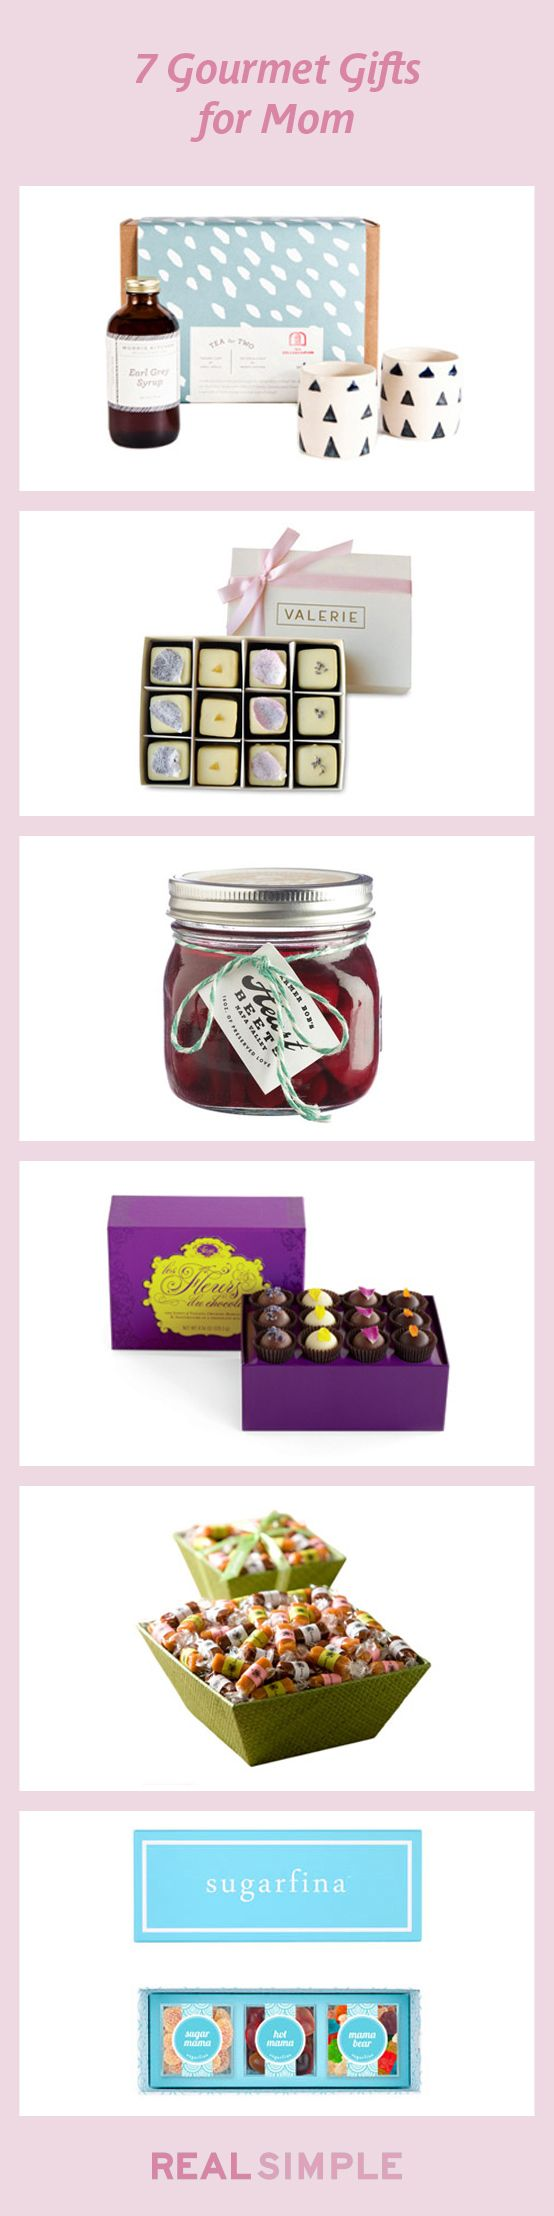 7 Gourmet Gifts For Mom. #mothersday